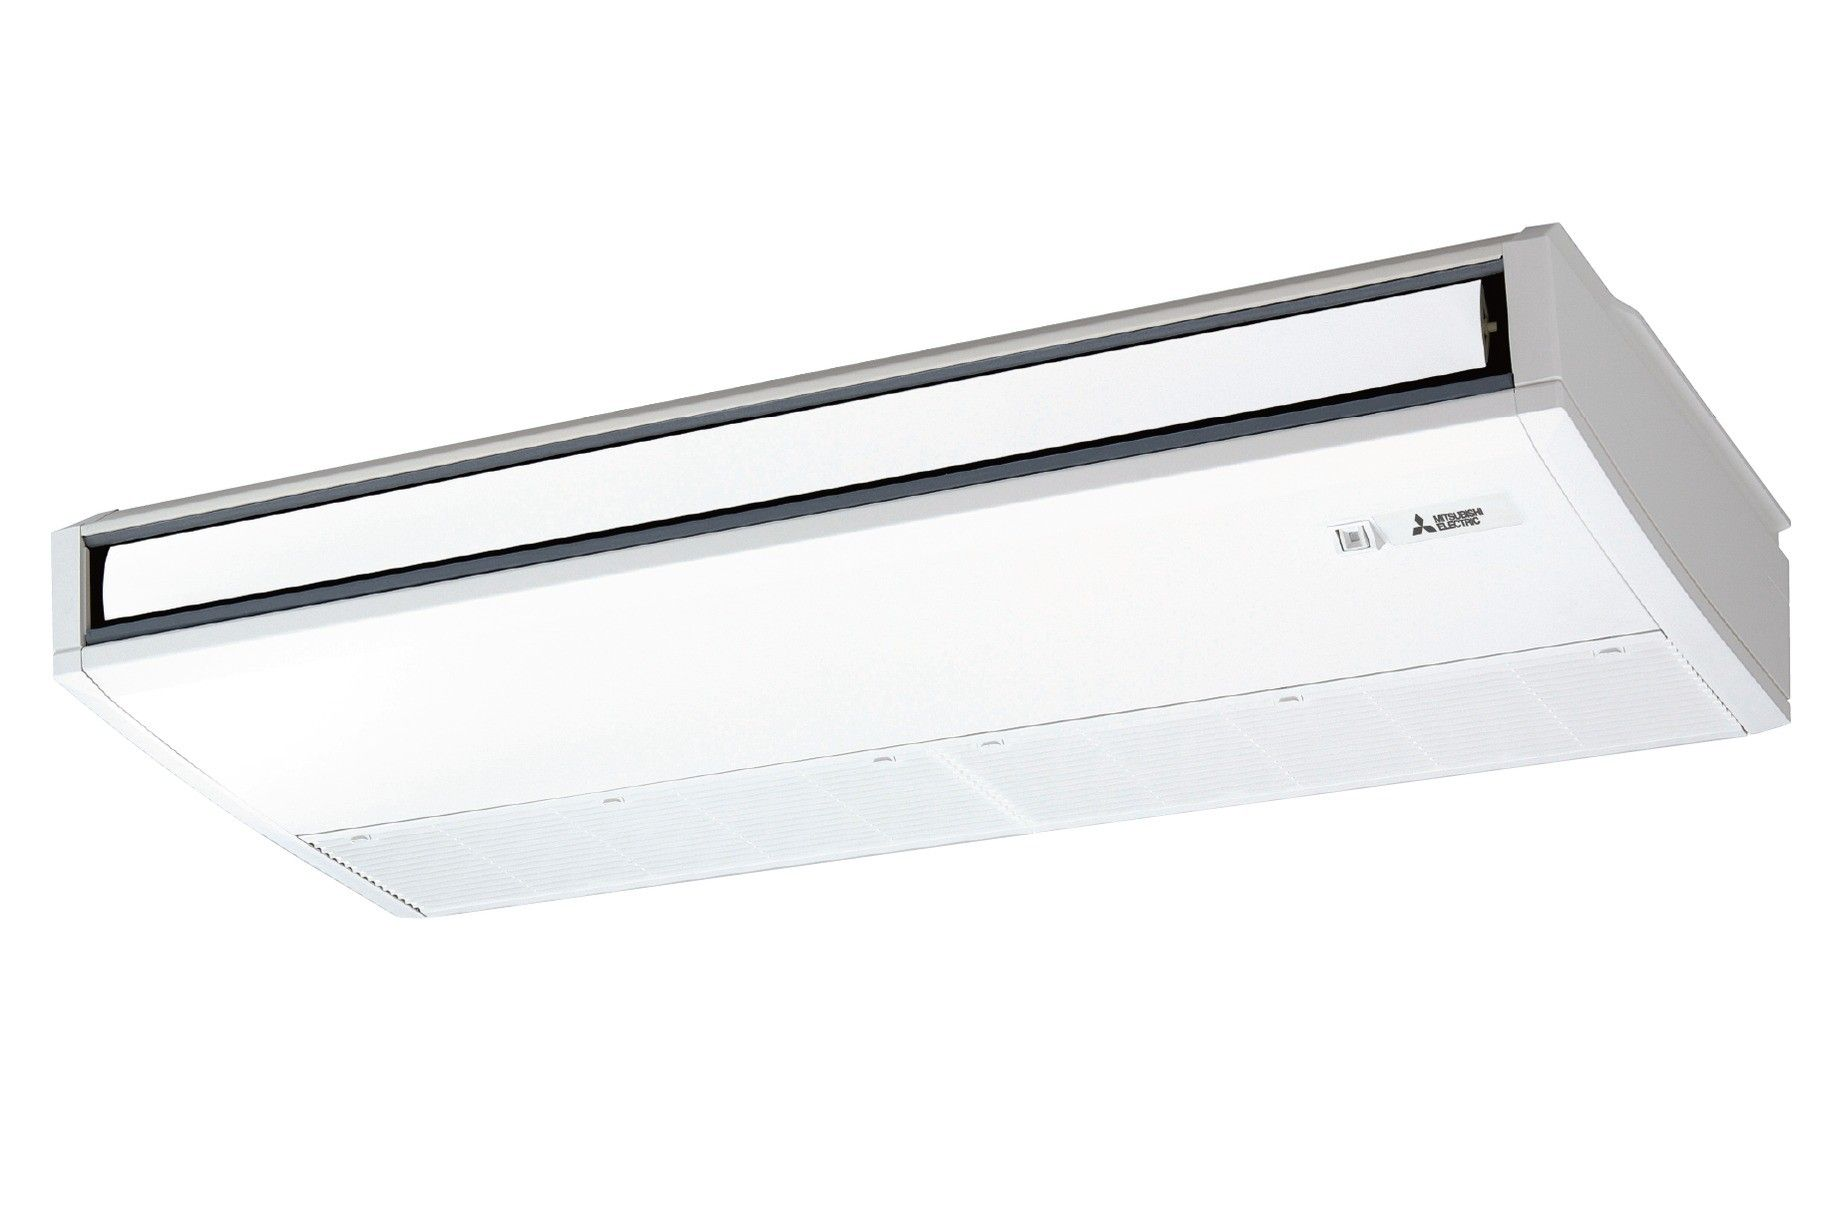 Mitsubishi Ductless 36k Btu Mitsubishi Pcaa Ceiling Suspended Indoor Unit In Ductless